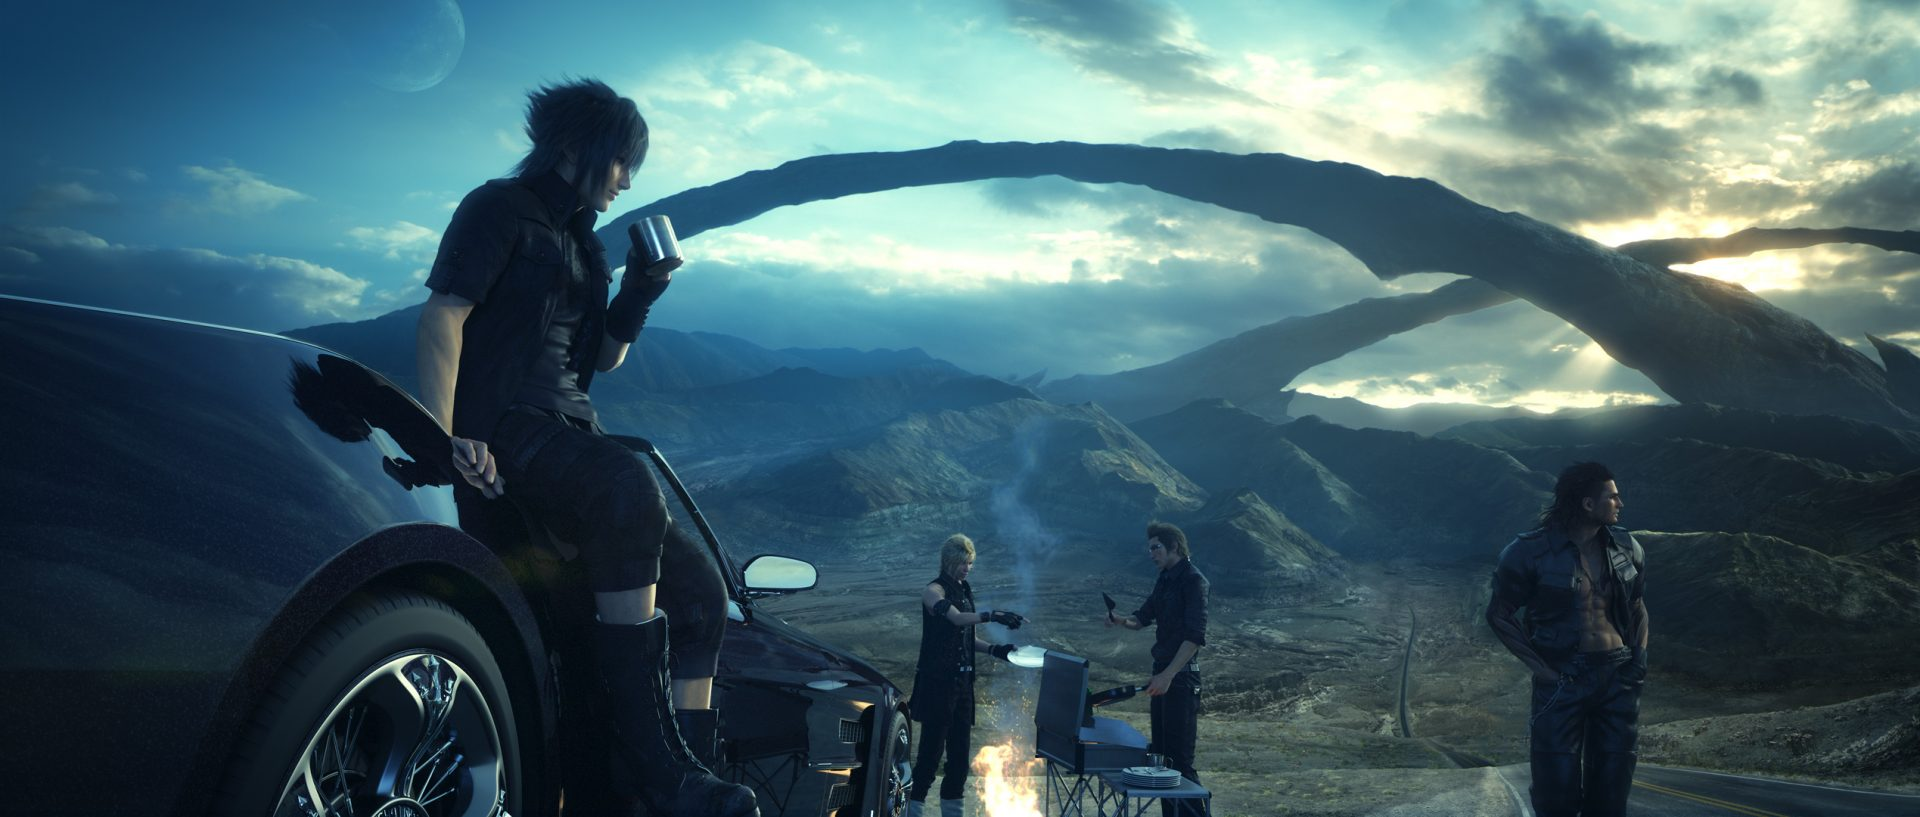 Review: Final Fantasy 15